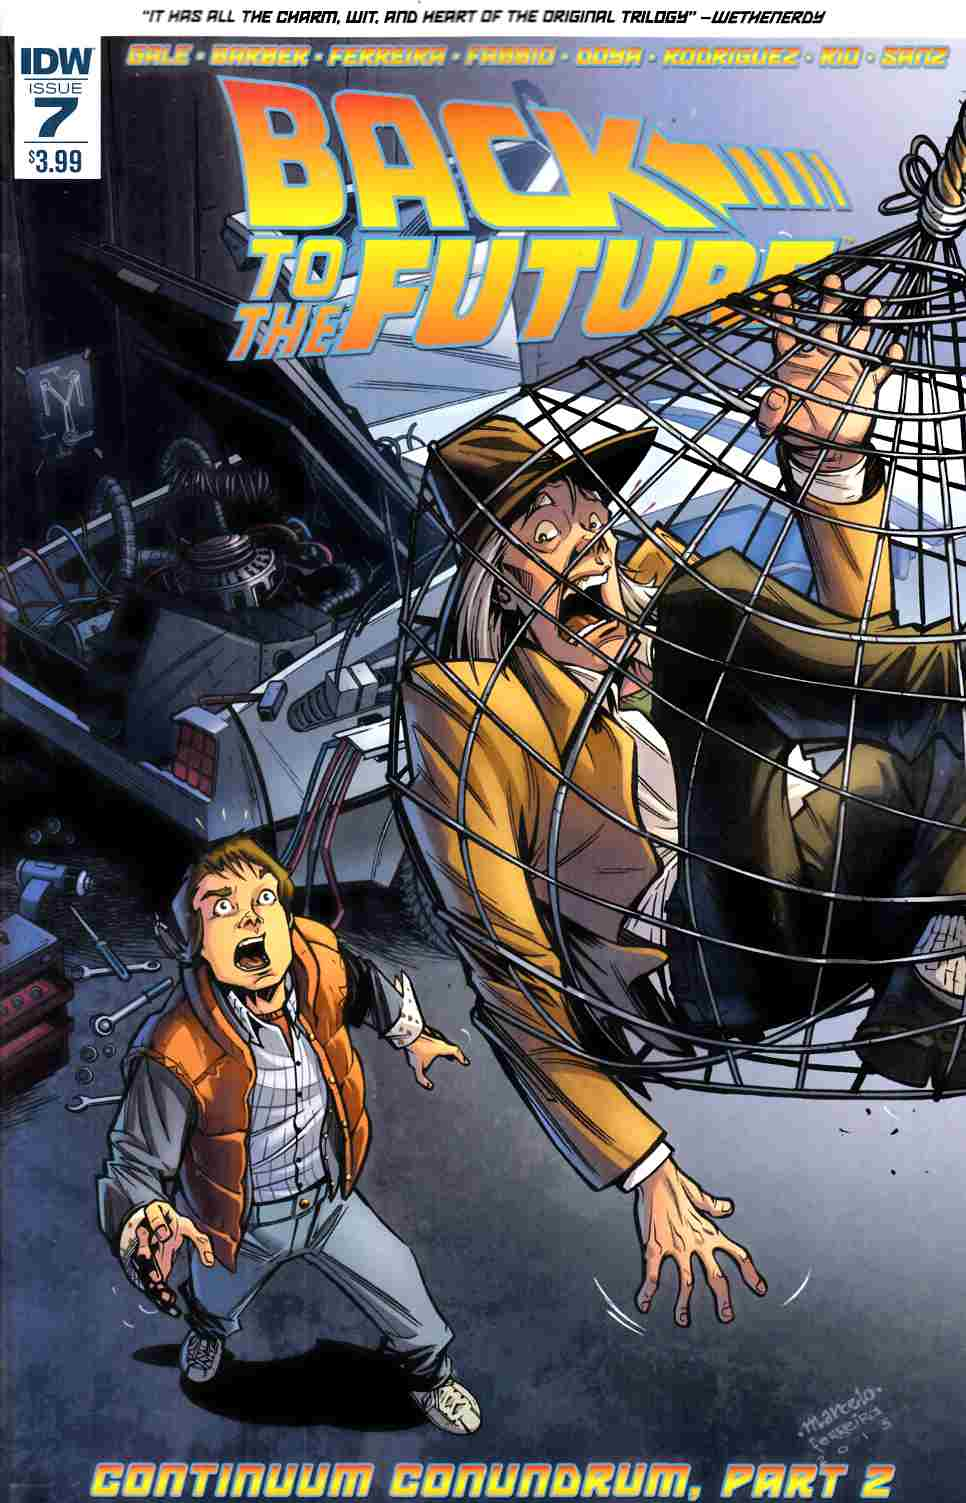 Back to the Future #7 [IDW Comic] THUMBNAIL